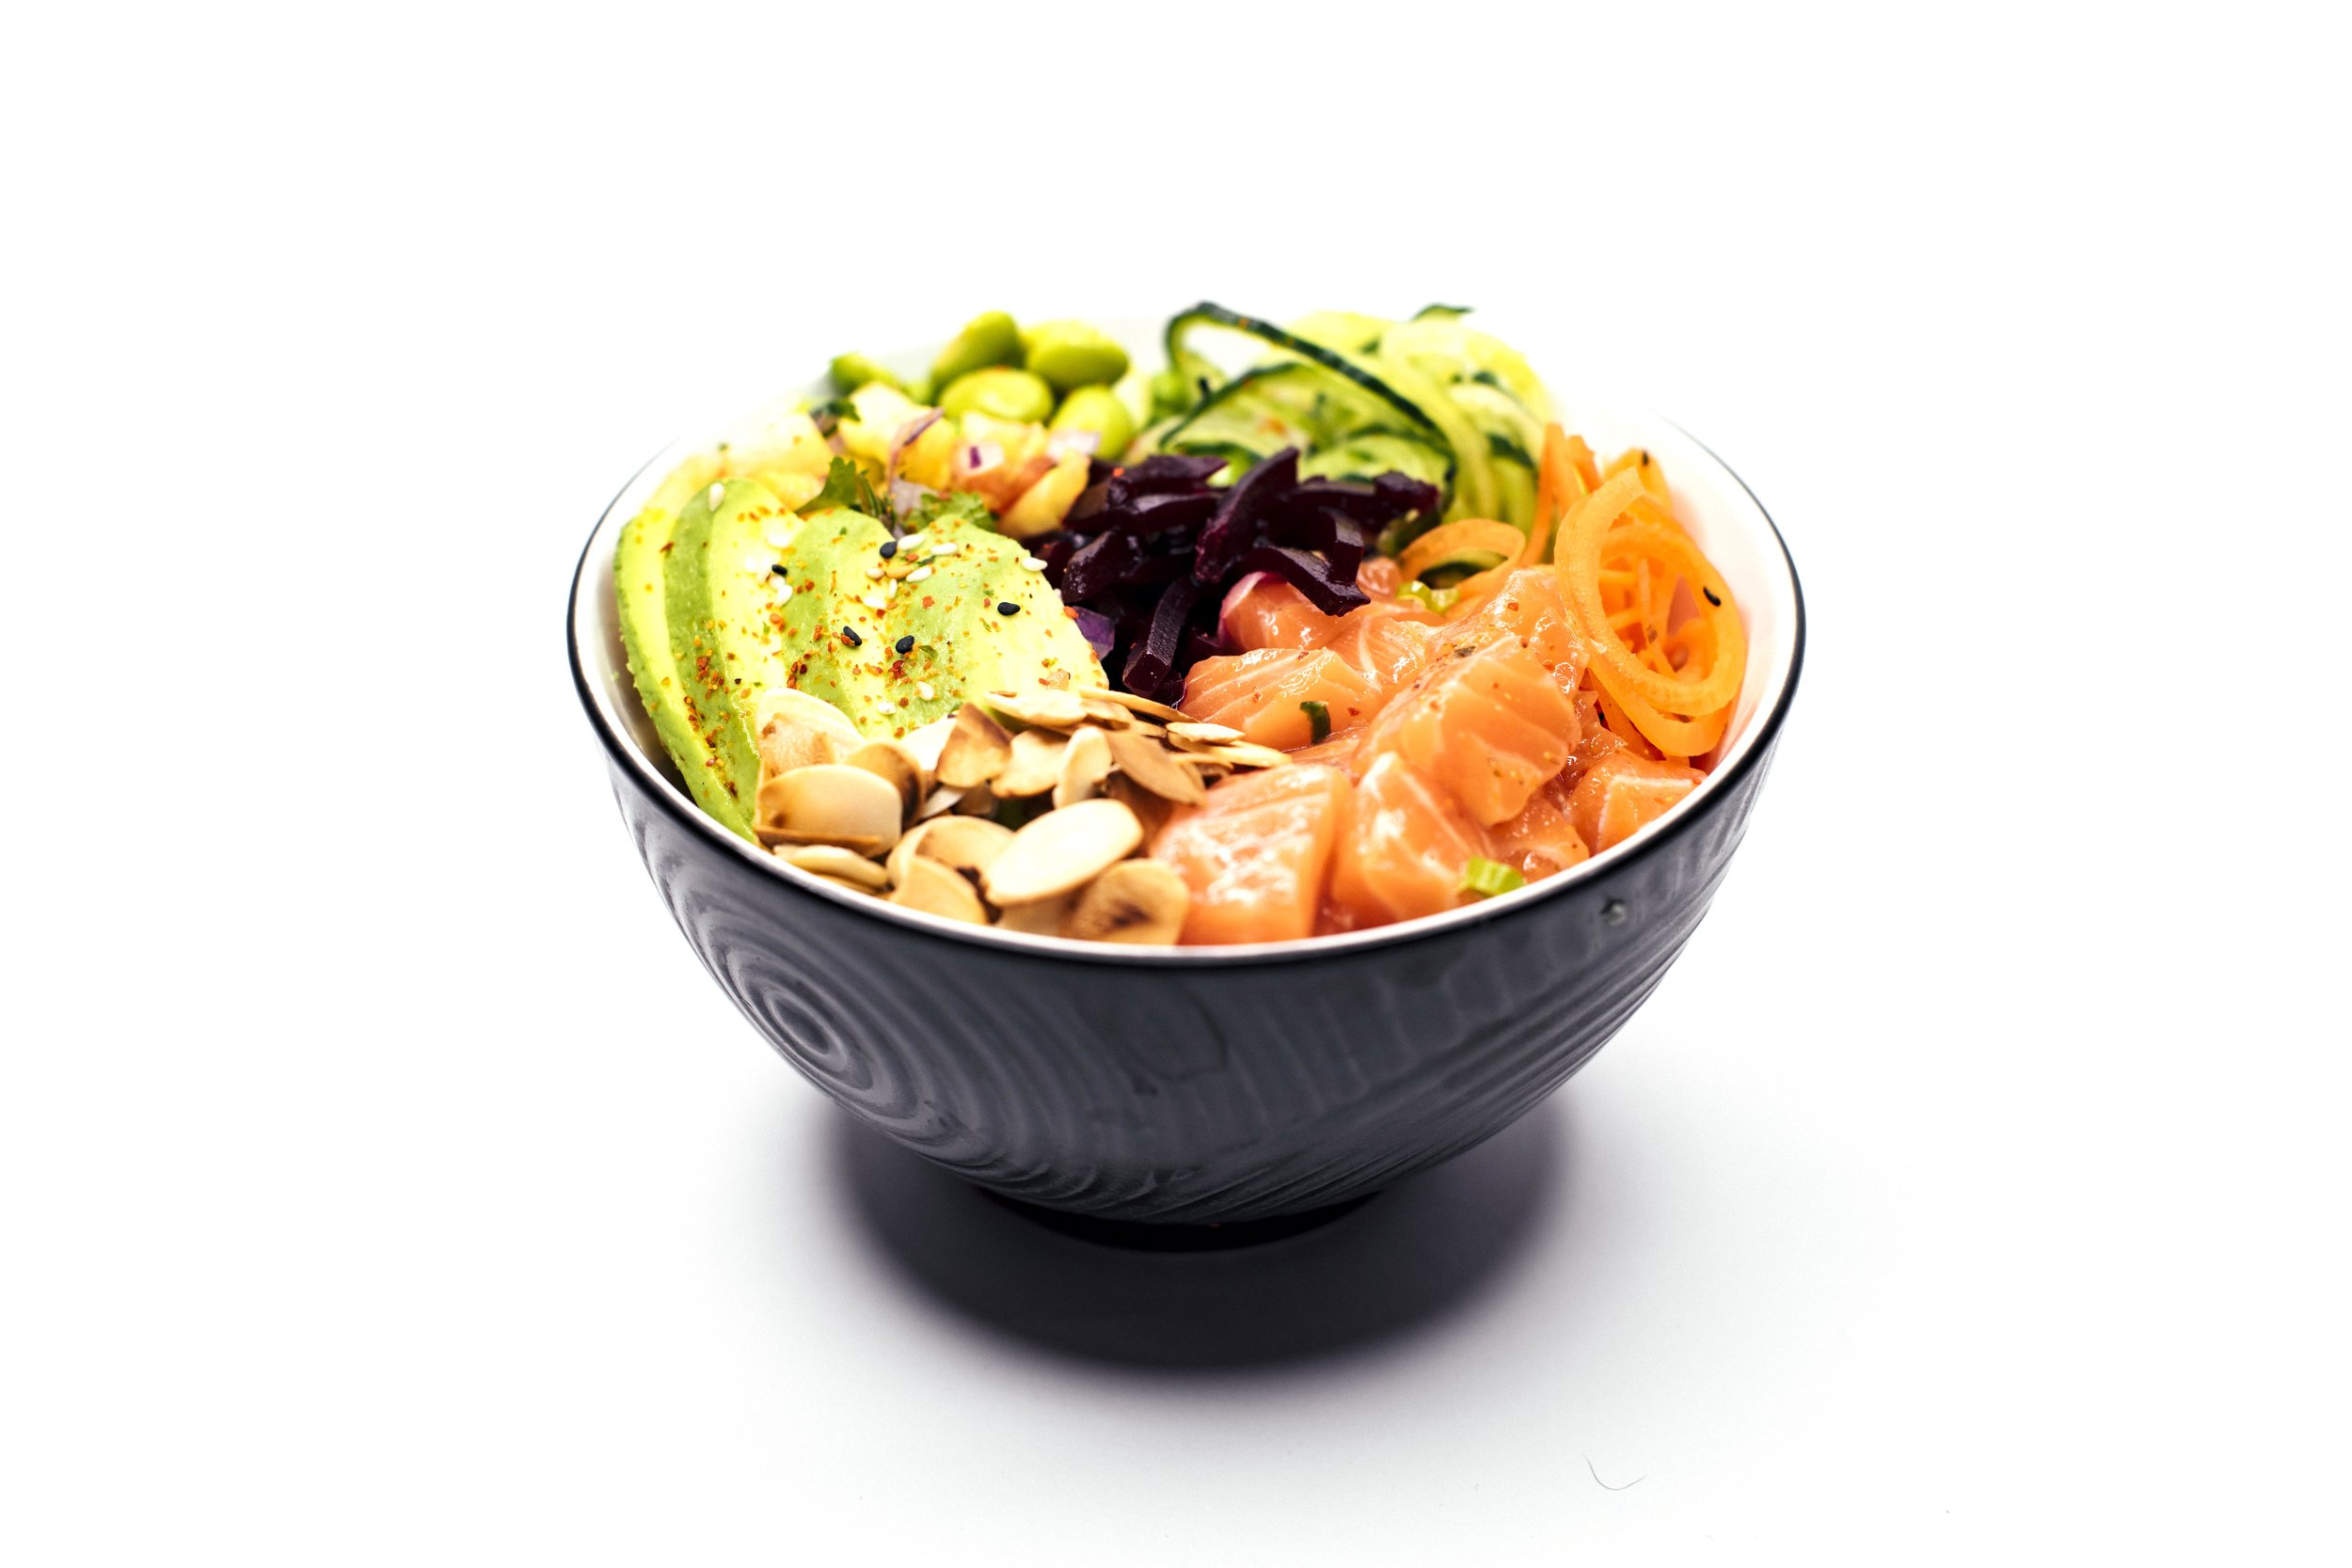 JIRO SALMON BOWL - Salmon Sashimi, Rice, Cucumber, Carrot, Edamame Beans, Pickled Beetroot, Avocado, Roasted Almond Flakes, Pineapple Salsa, Creamy Wasabi Sauce or Ponzu Power Sauce